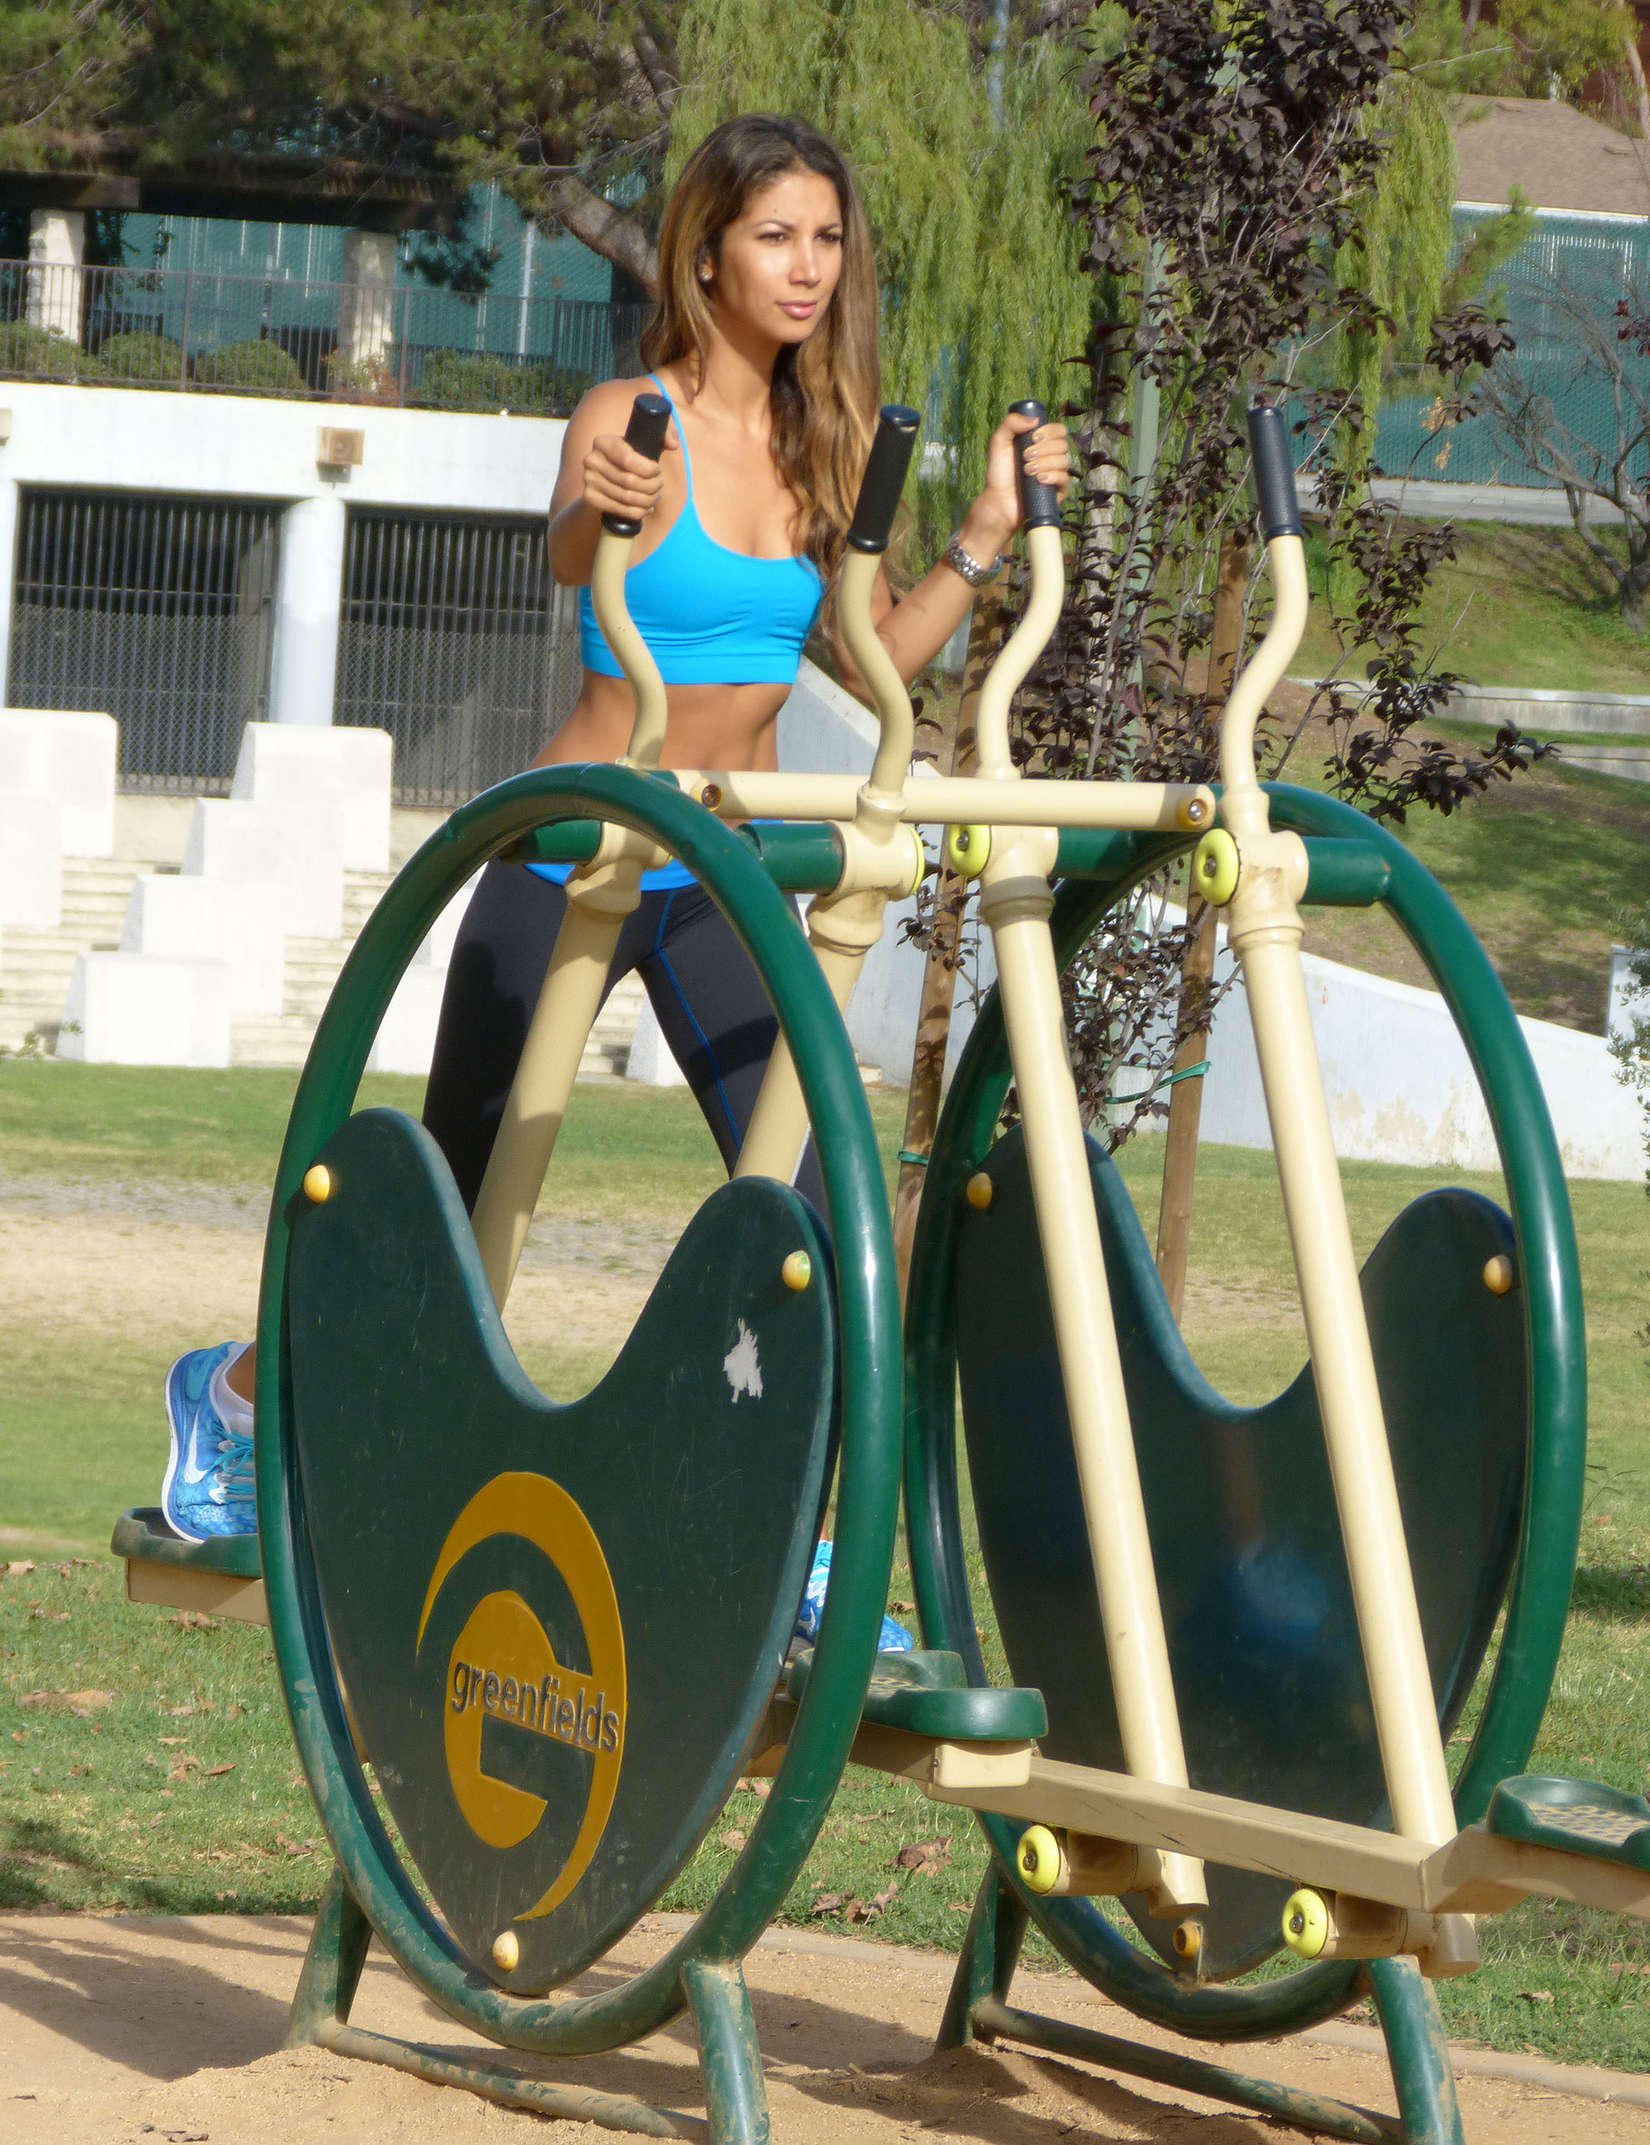 Leilani Dowding at Pan Pacific Park in West Hollywood